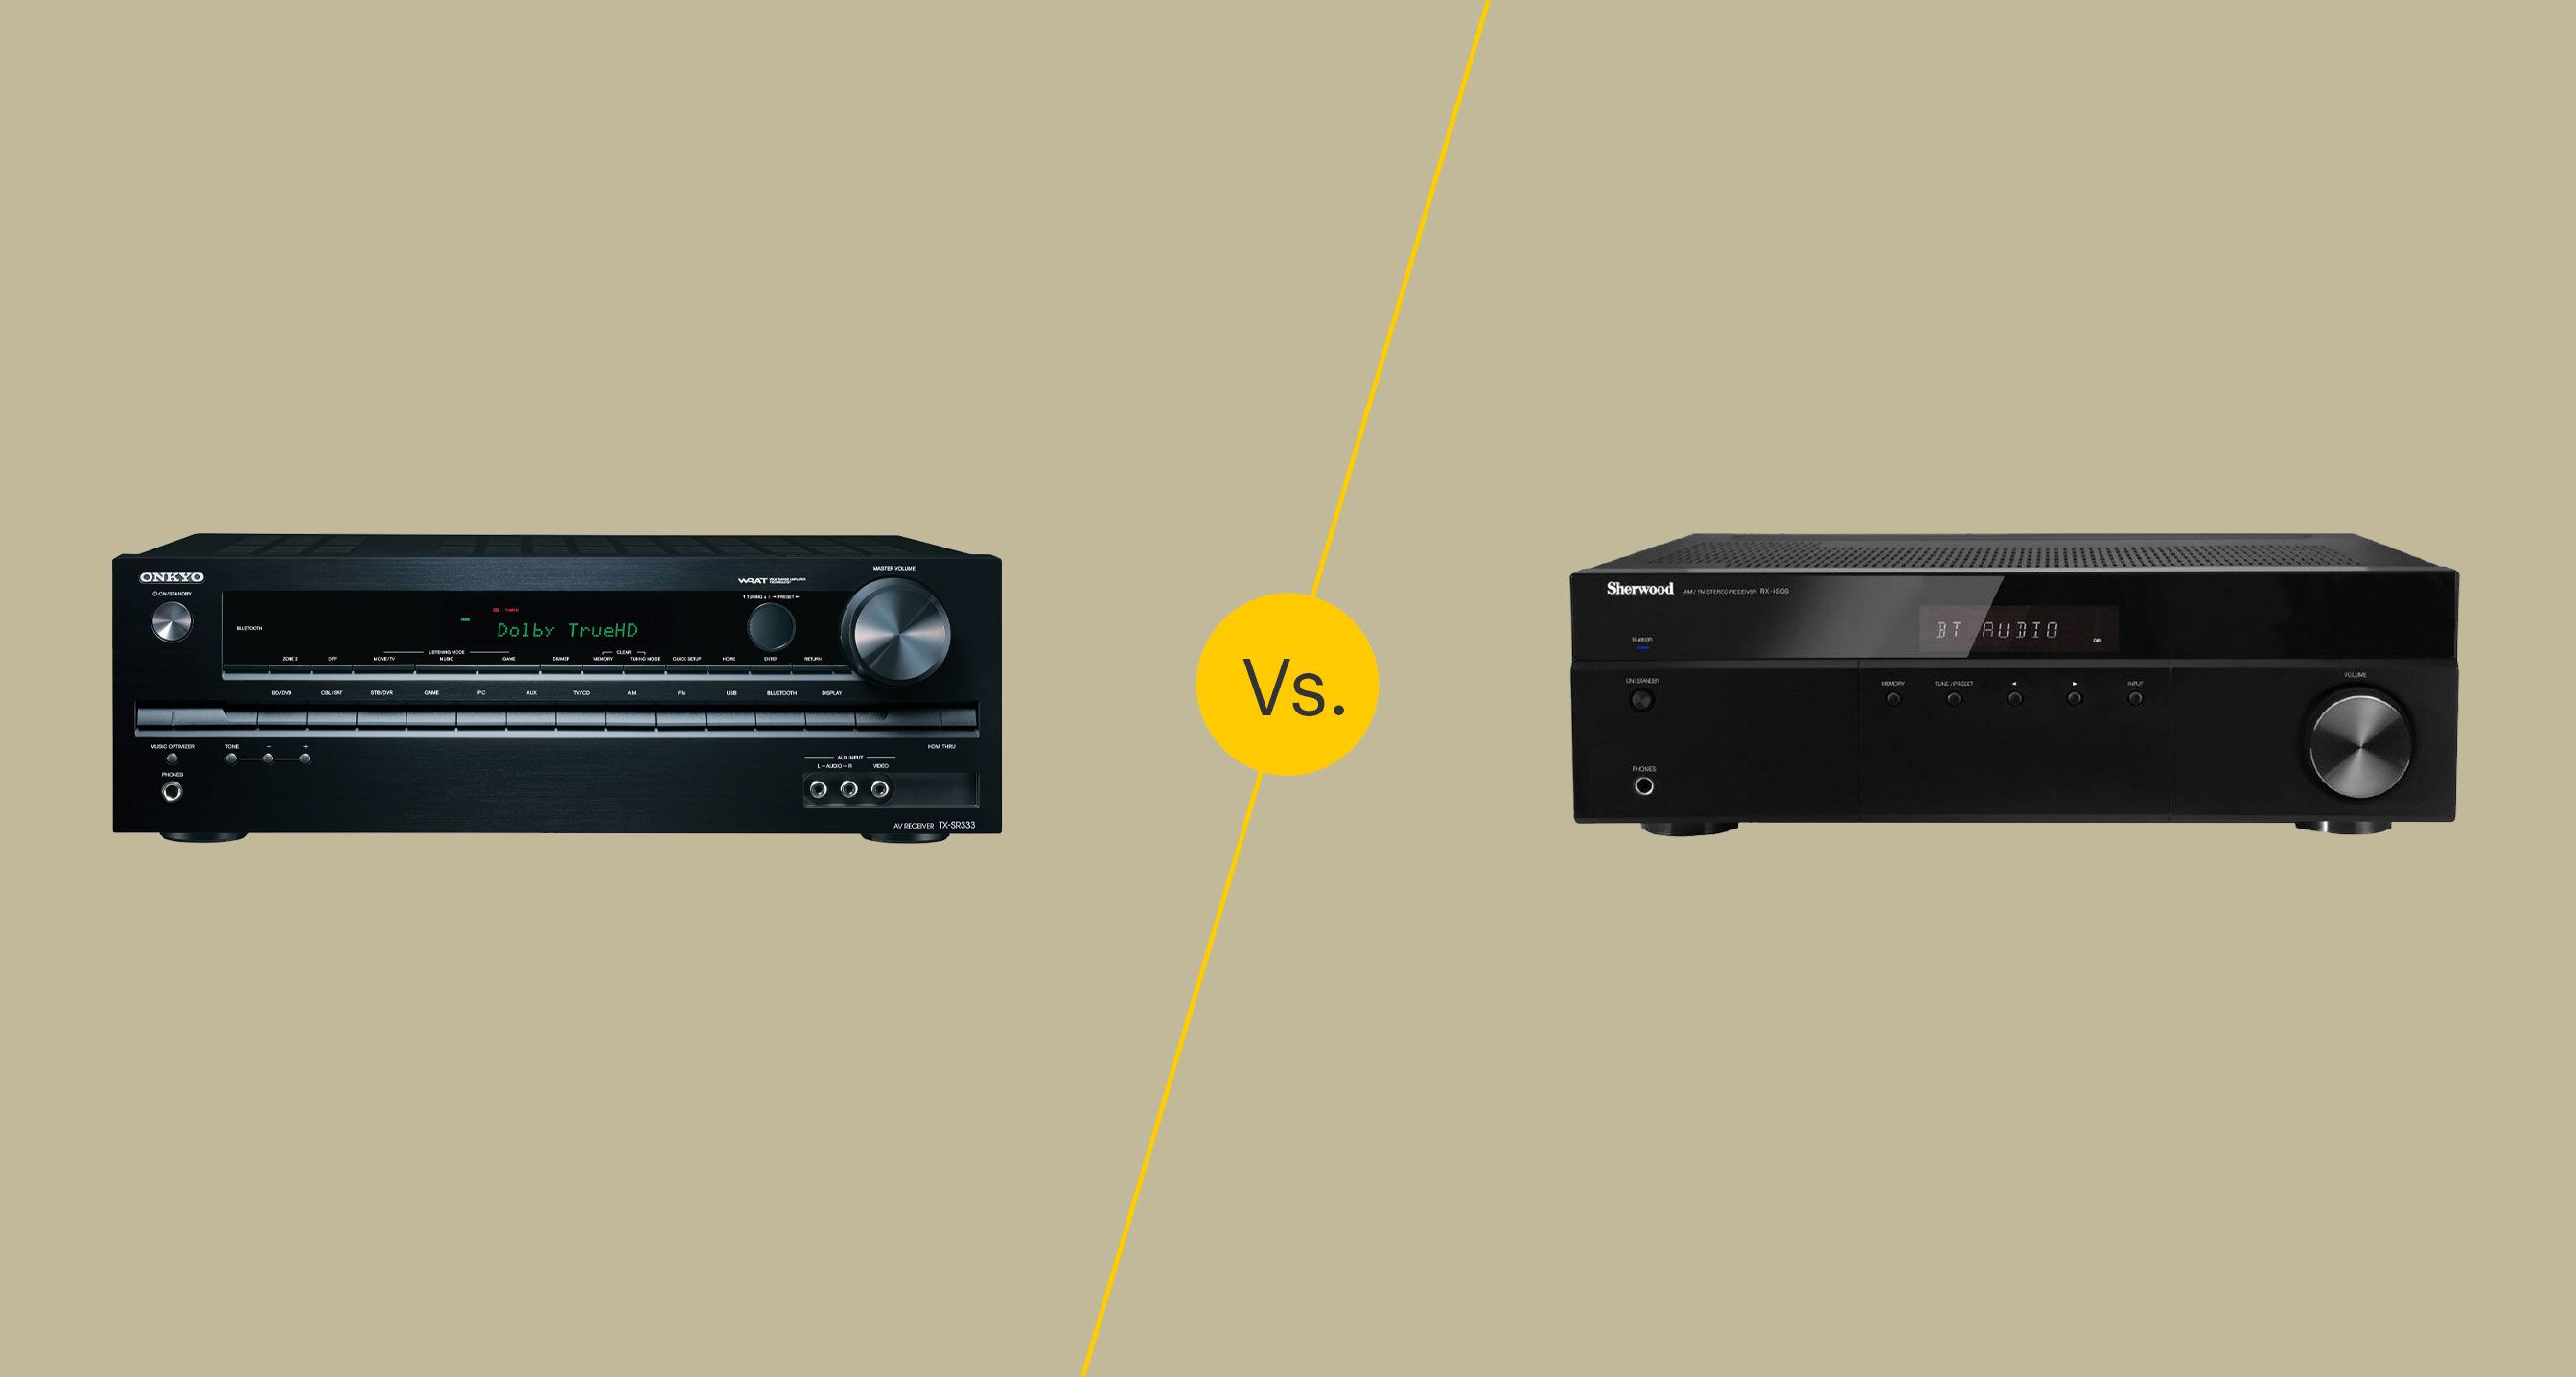 Home theater receiver vs Stereo receiver